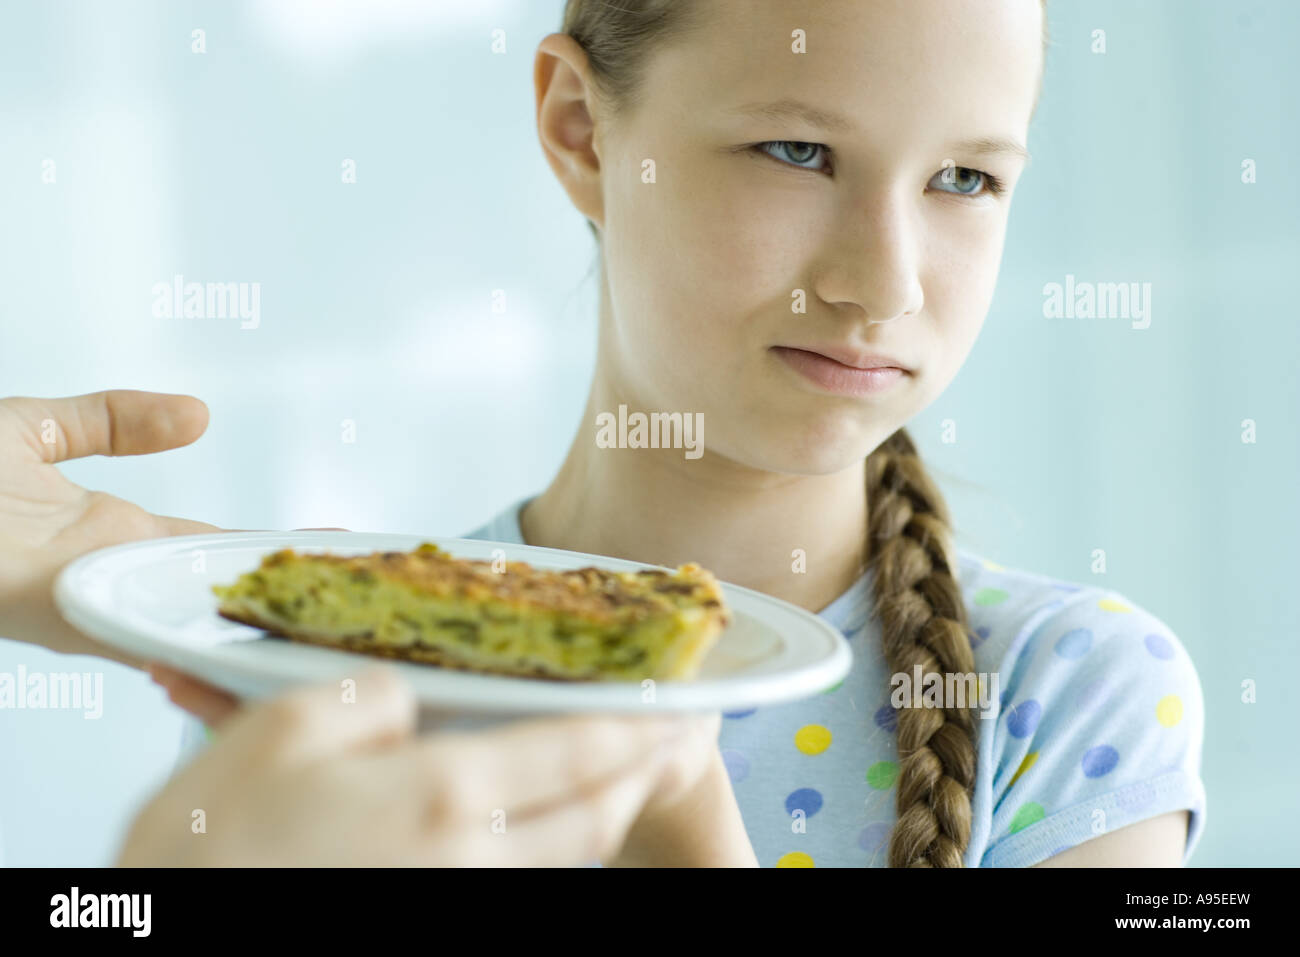 Hands holding up slice of quiche toward girl, girl making face and looking away - Stock Image